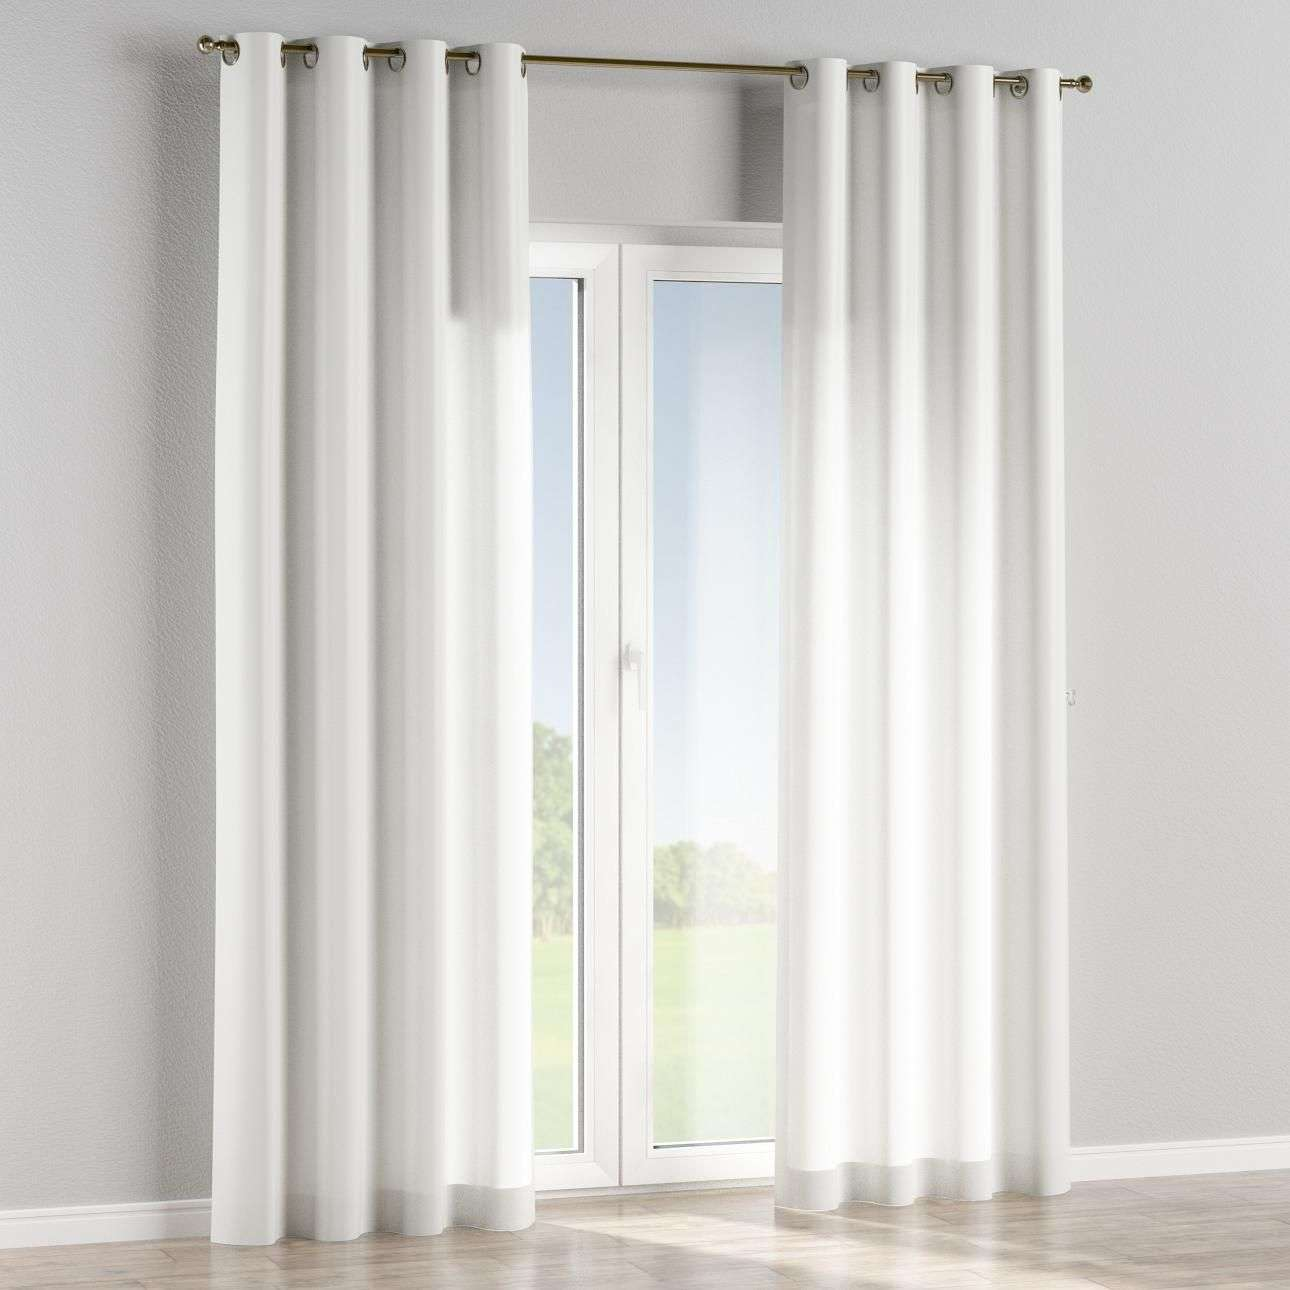 Eyelet curtains in collection Marina, fabric: 140-60